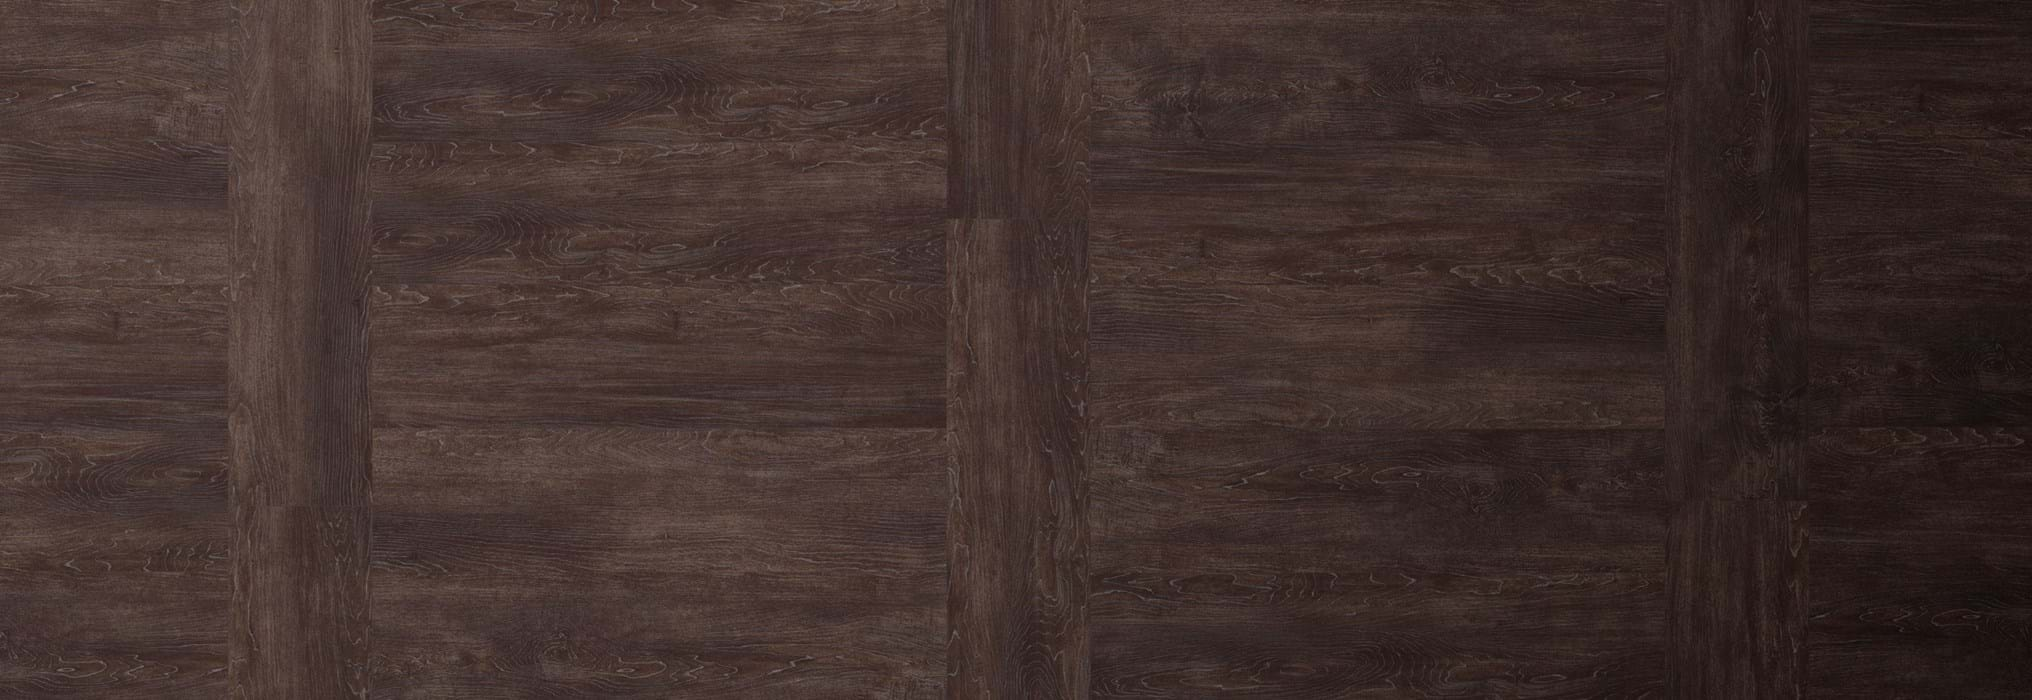 Amtico International: Script Maple Coal - AM5W7950